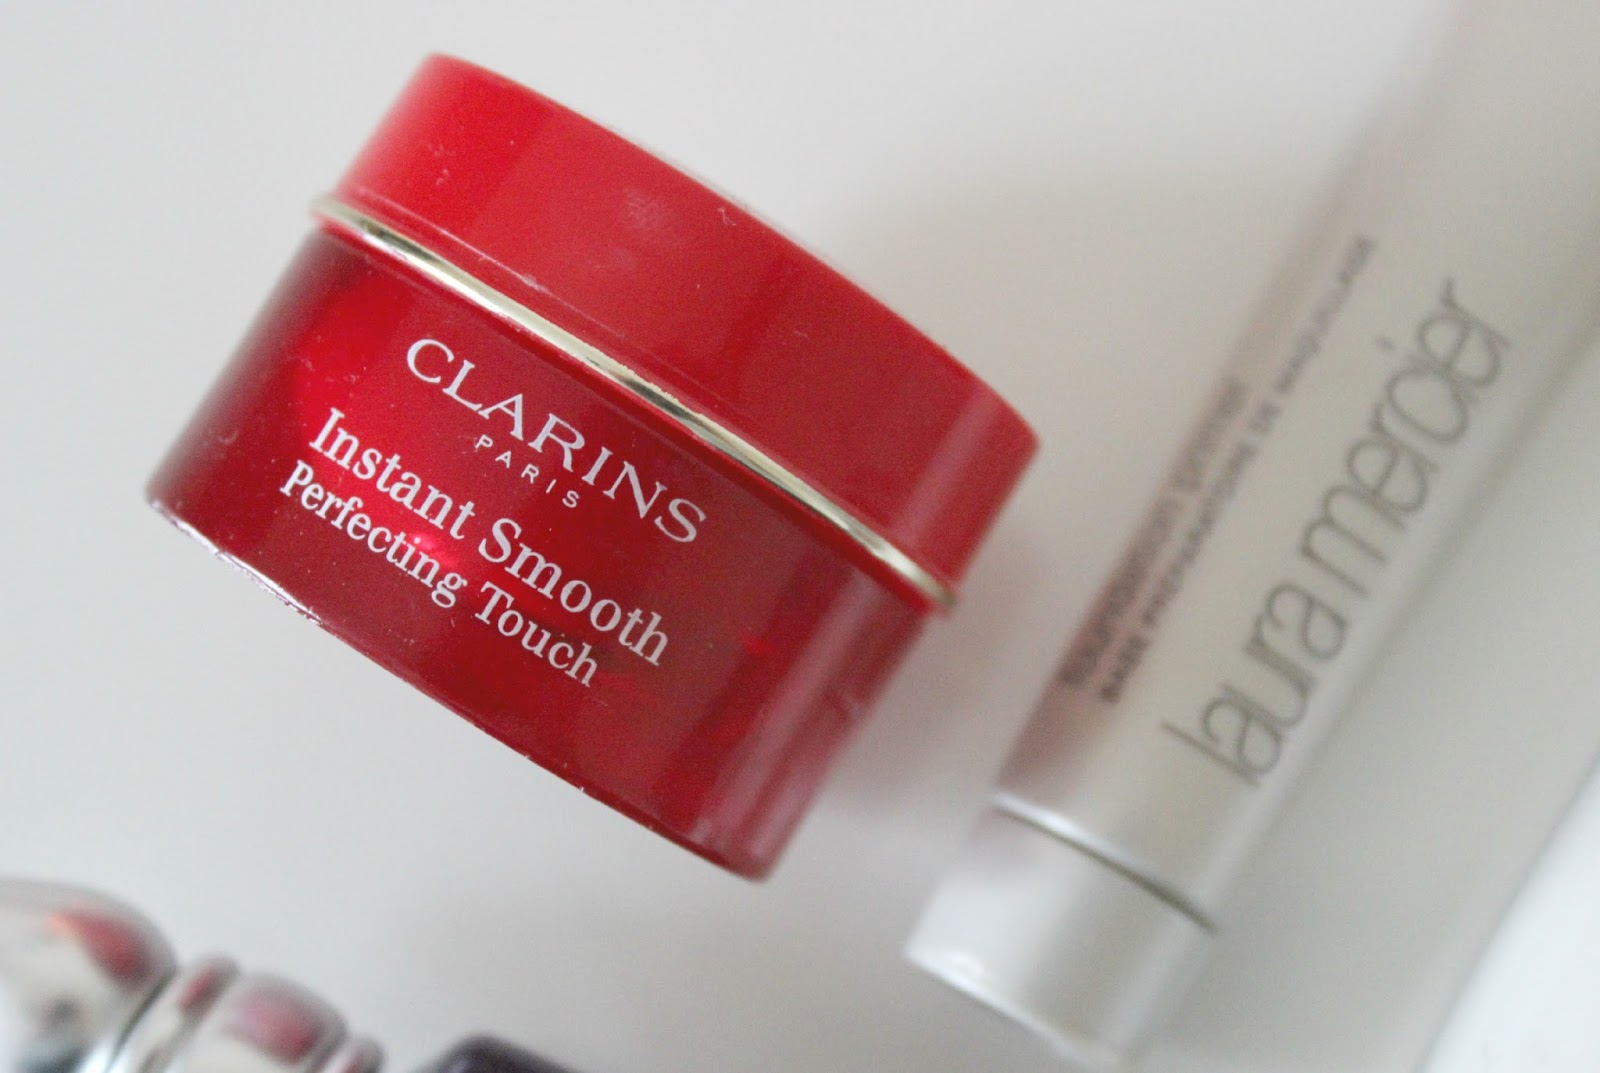 A picture of Clarins Instant Smooth Perfecting Touch